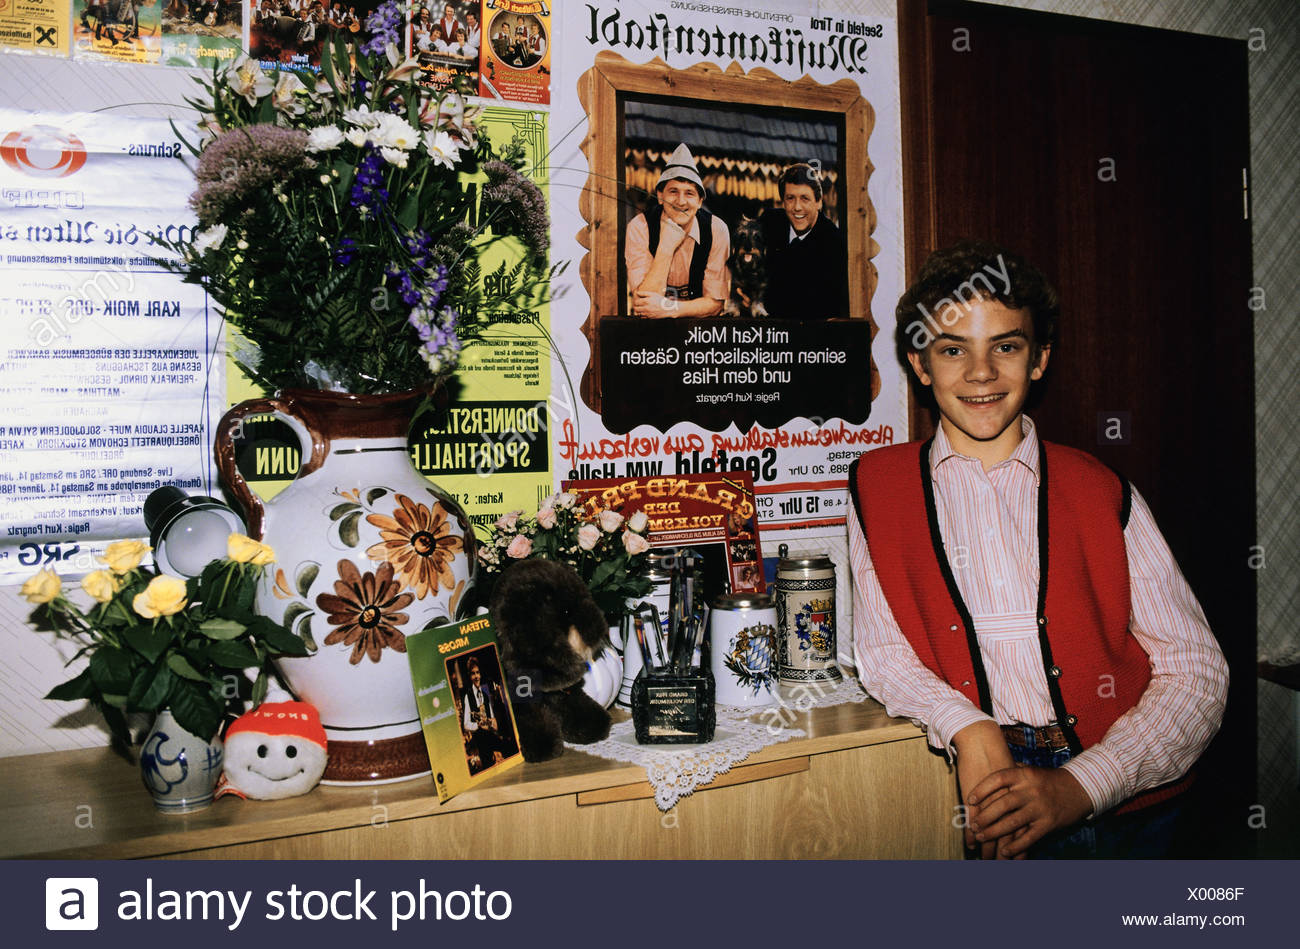 Mross Stefan, * 26.11.1975, German musician (rumpeter), winner of the Folk Music Grand Prix, 1989, in his home in Traunstein, , Additional-Rights-Clearances-NA - Stock Image